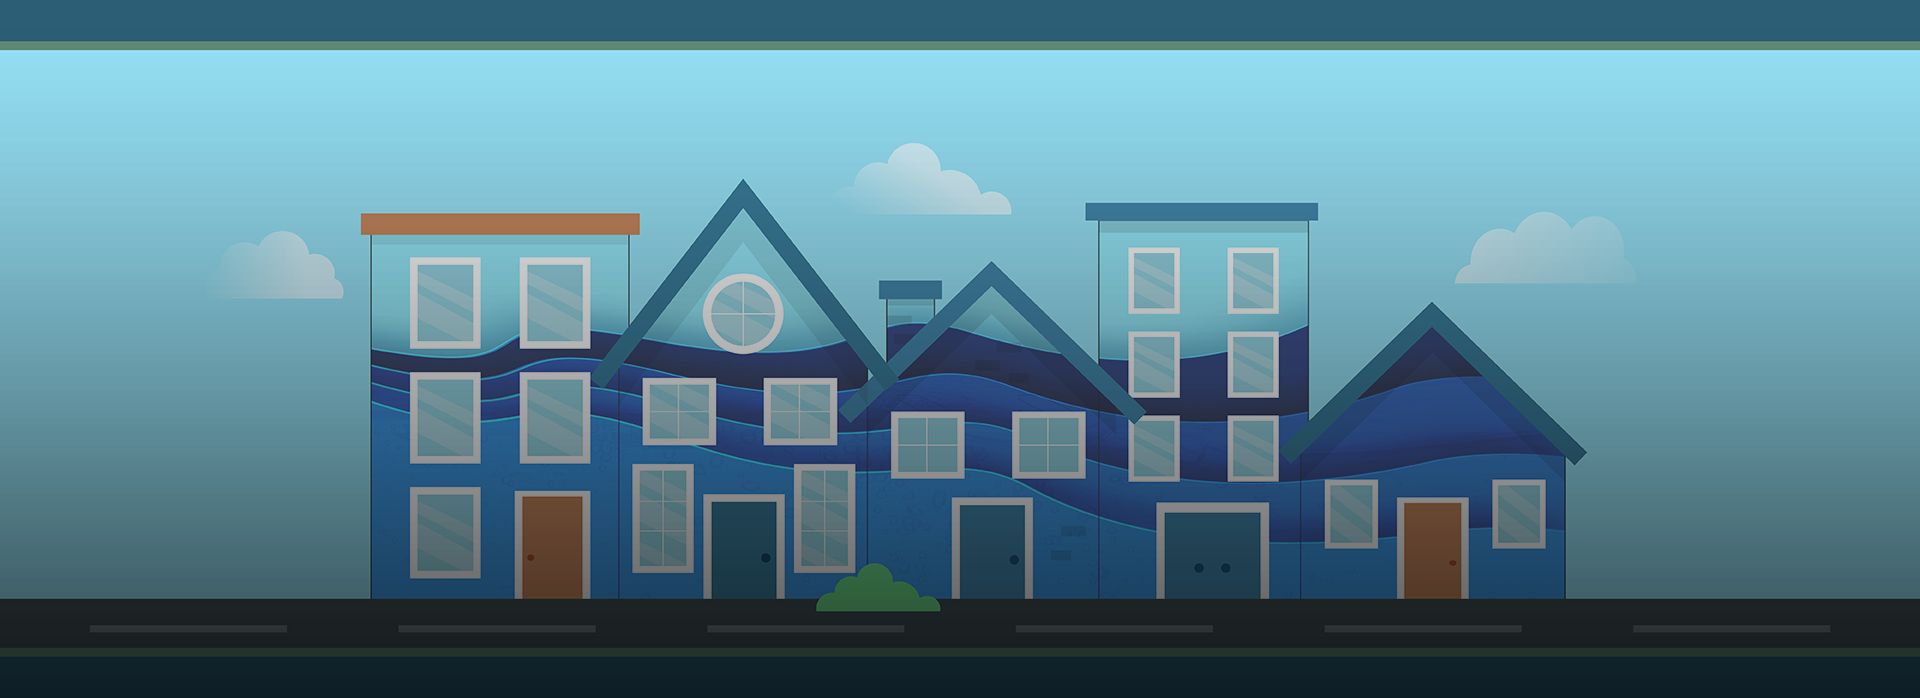 How many homes in Arizona, on average, share an acre-foot of water each year?